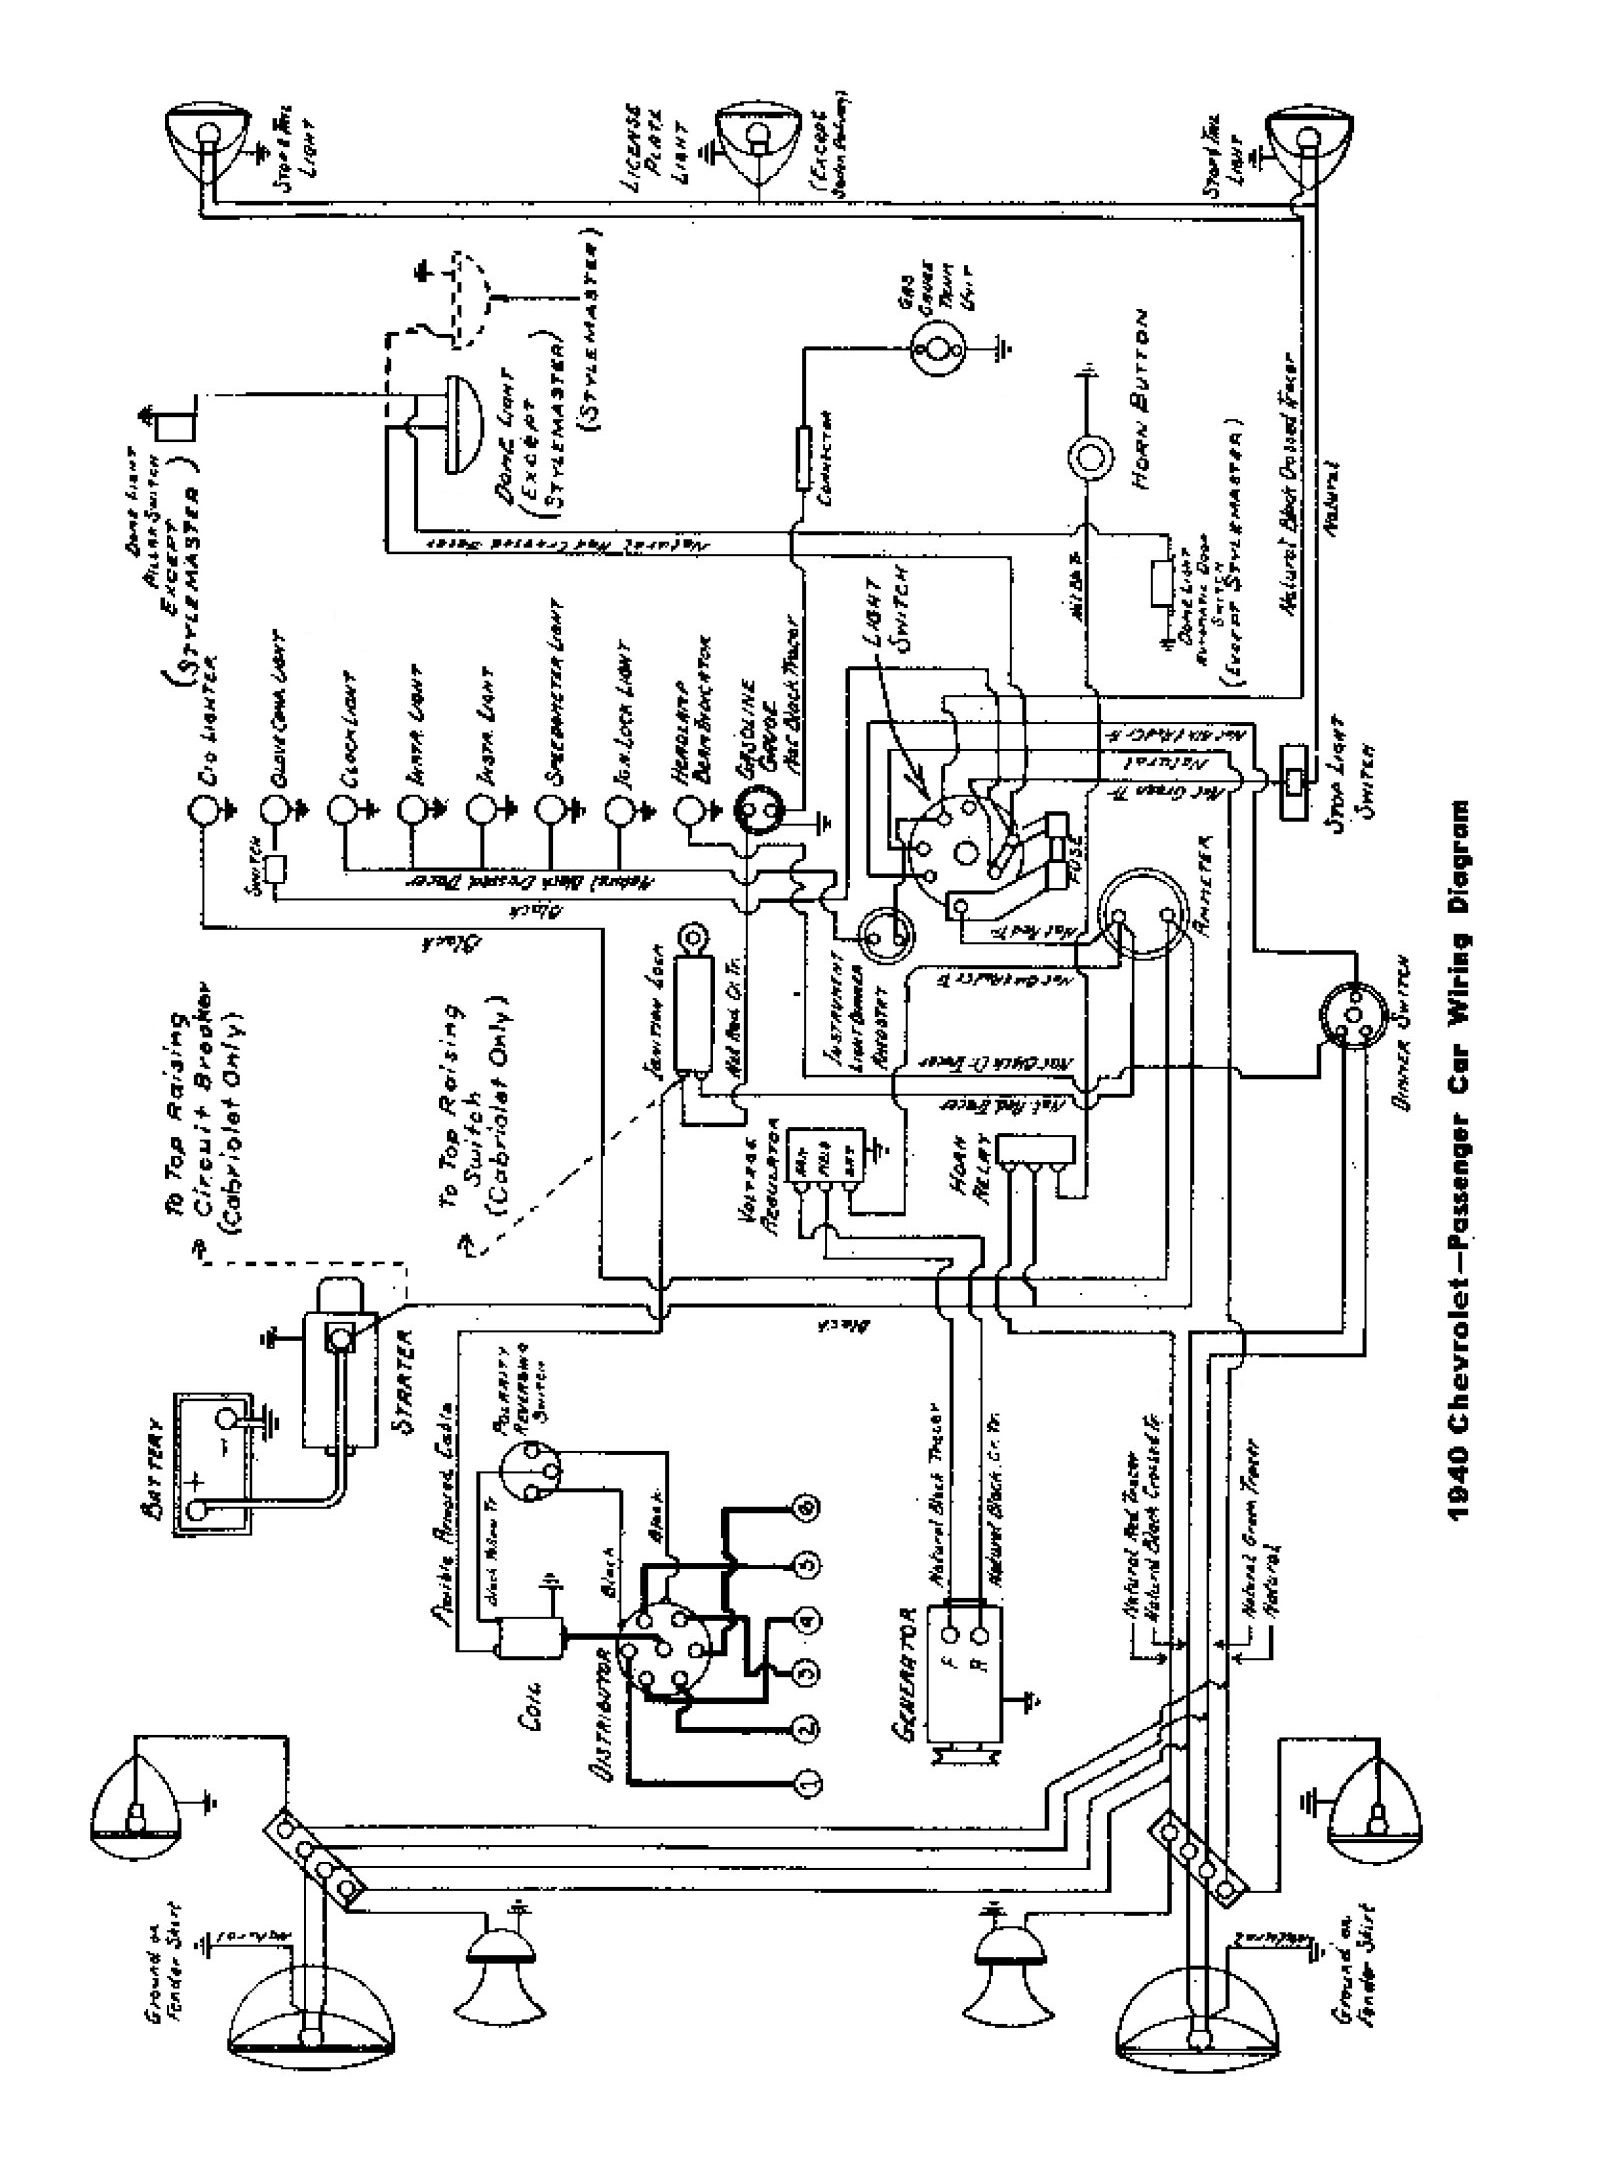 hight resolution of 1952 chevy pickup wiring diagram trusted wiring diagram chevy truck wiring diagram 1952 chevy wiring diagram